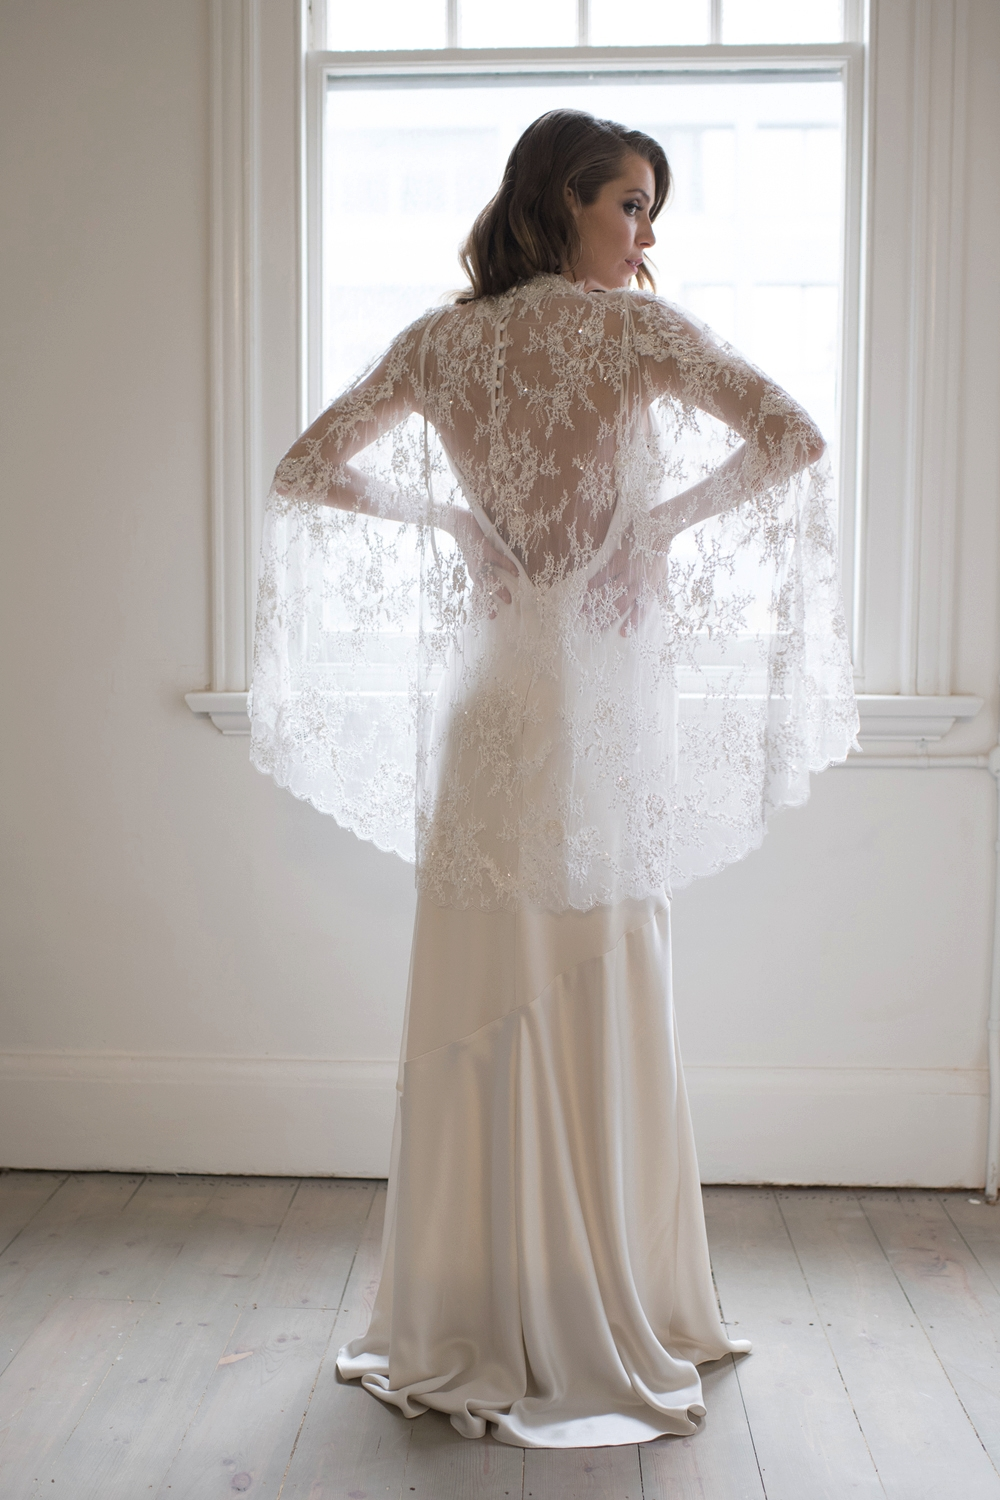 17 Essential Wedding Gown Shopping Tips — unbridely